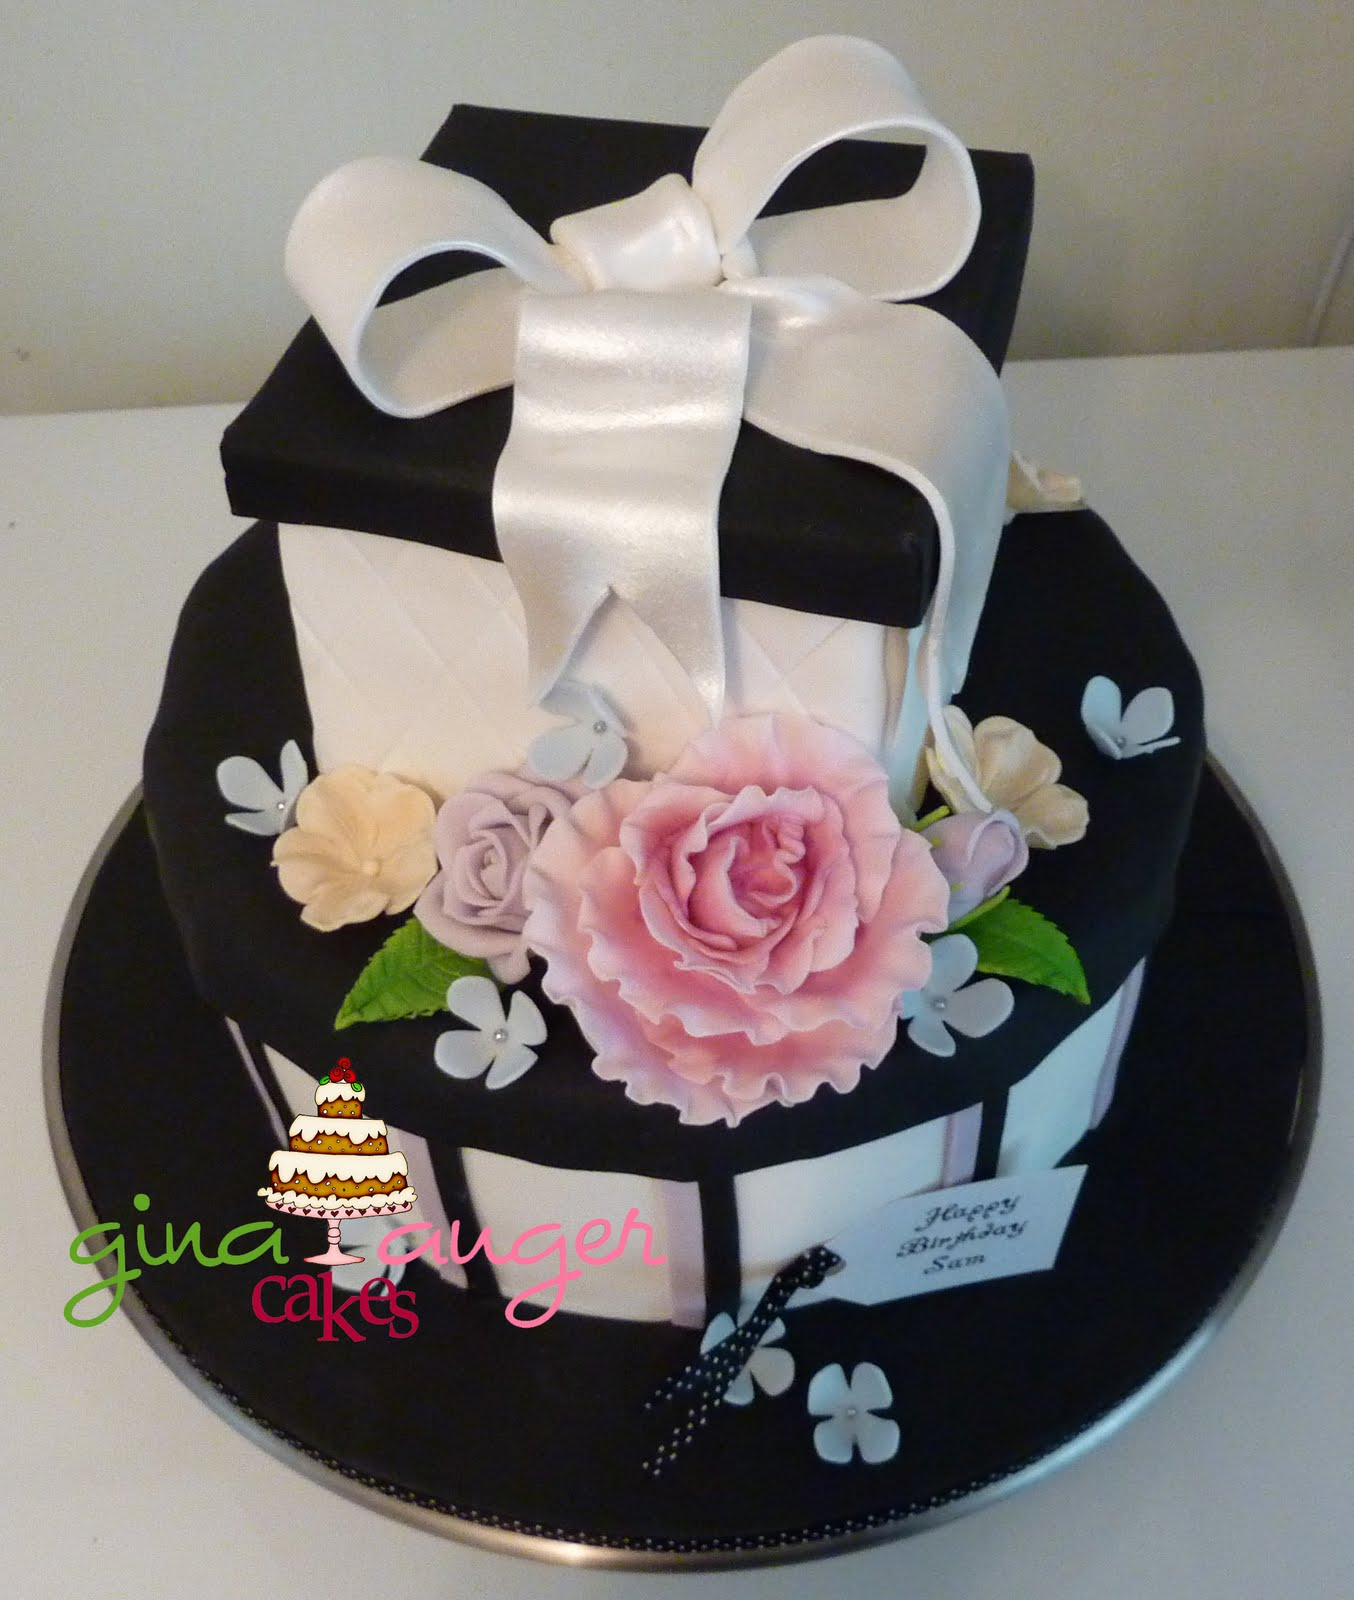 Top That Black And White Gift Box Cake Sams Birthday